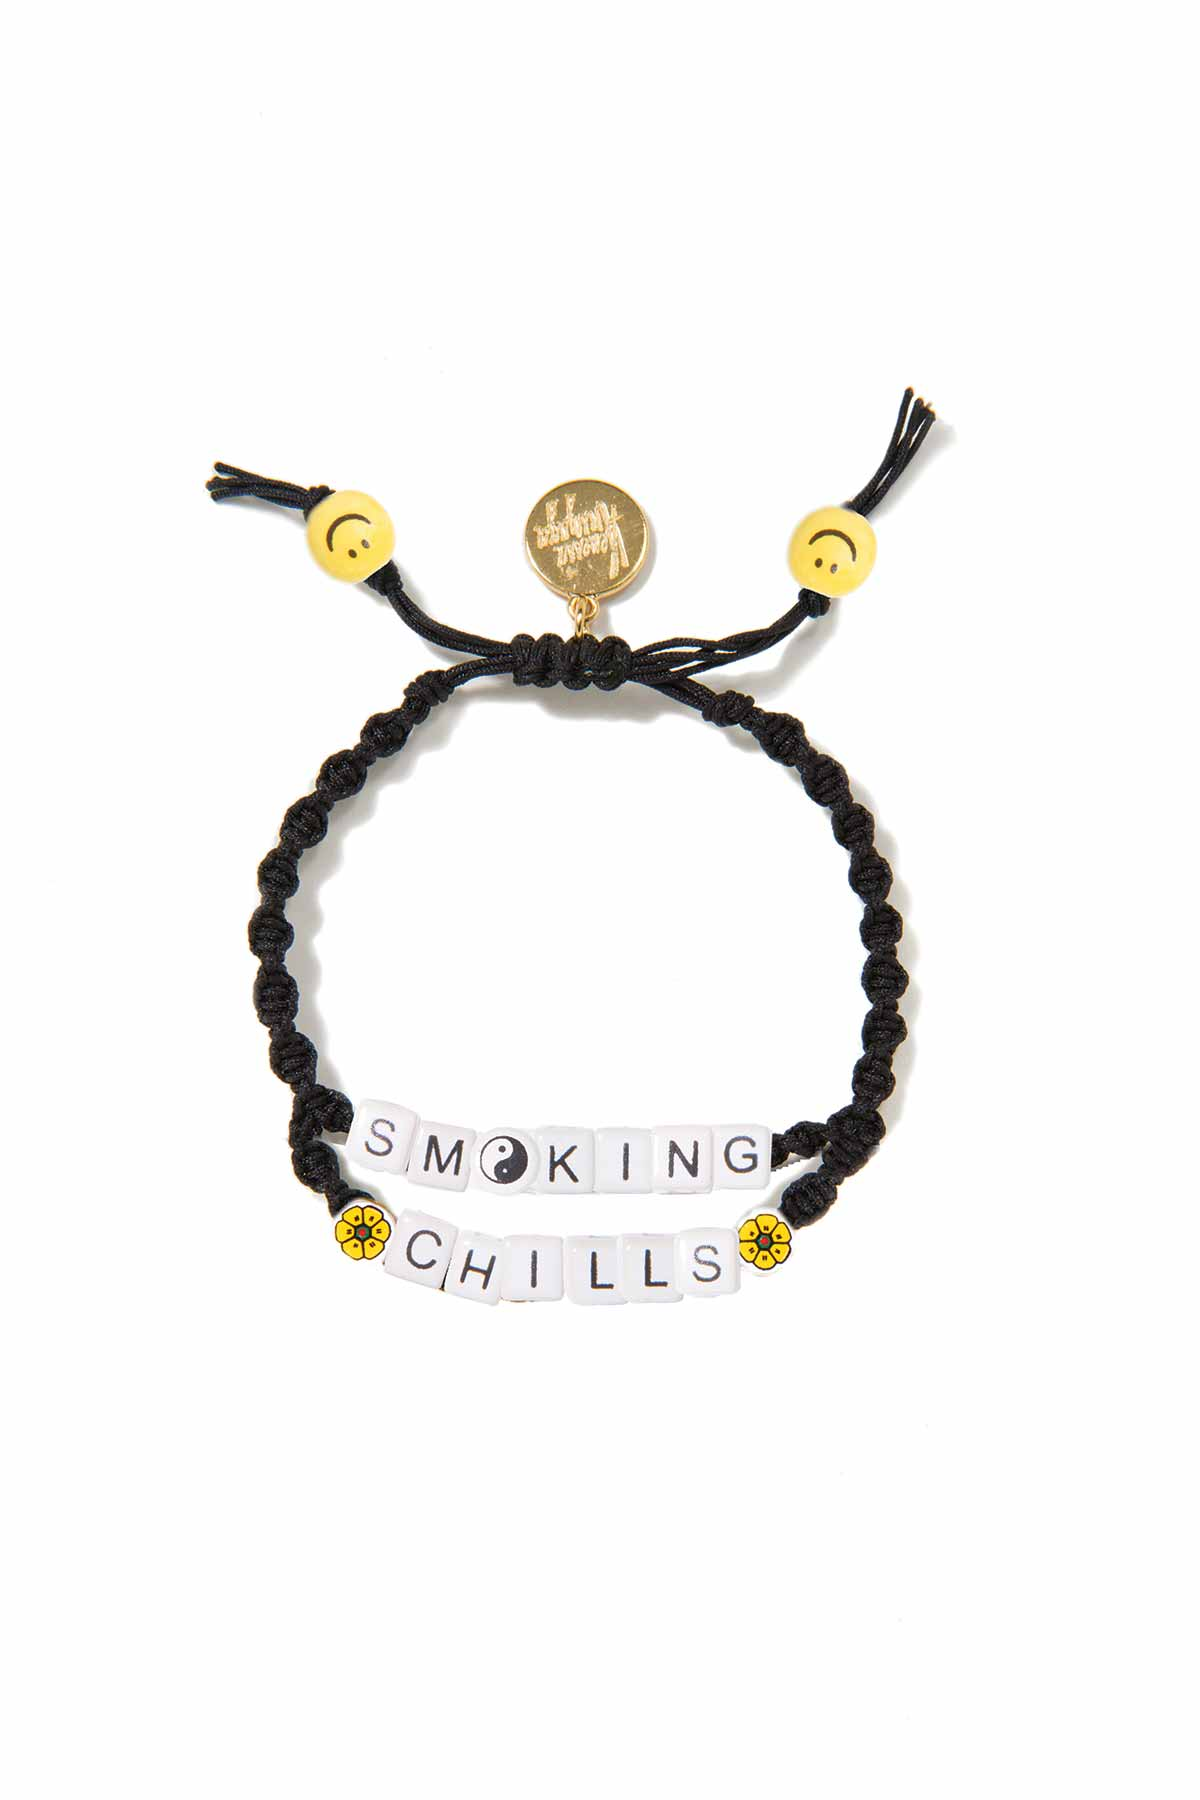 Smoking Chills Bracelet [Collab x Venessa Arizaga]